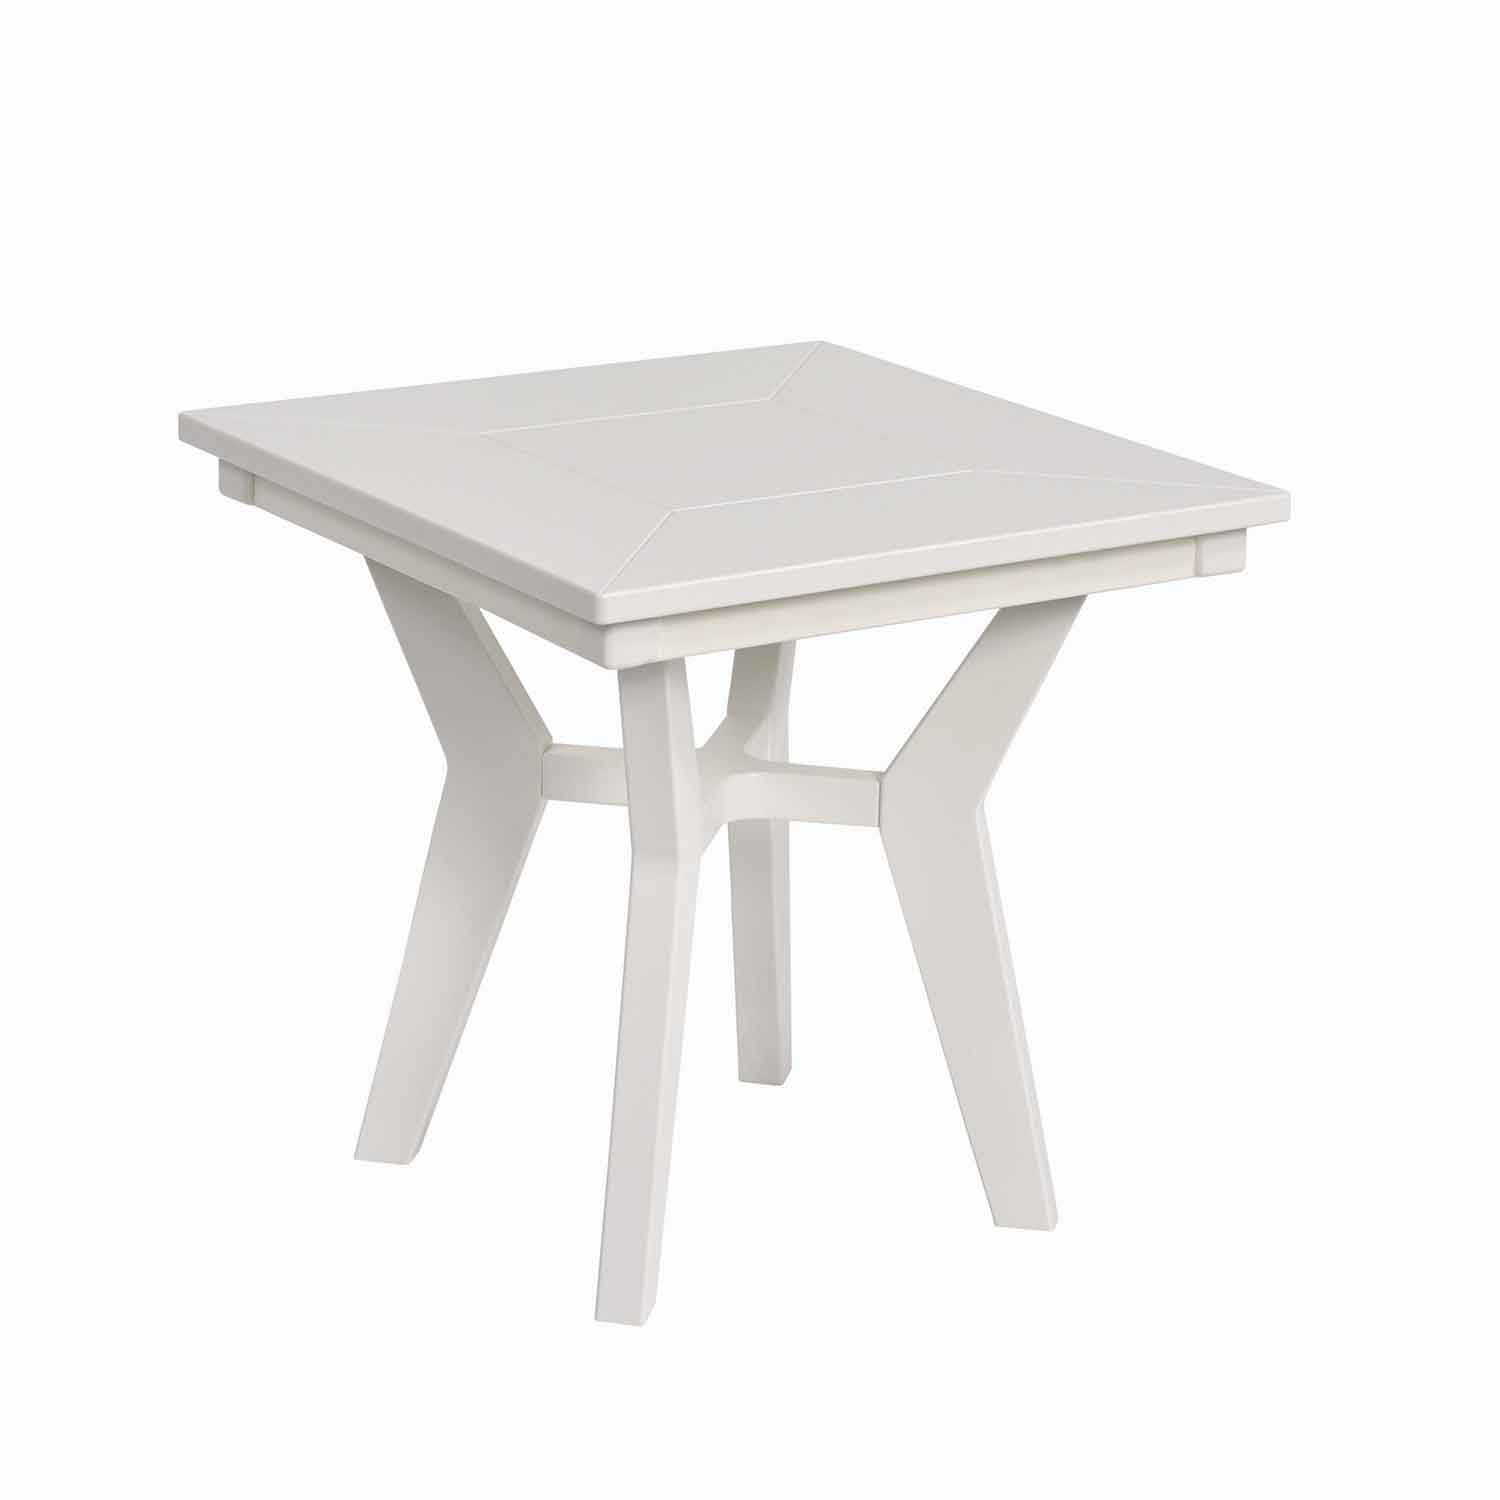 Mayhew Poly Lumber End Table by Berlin Gardens